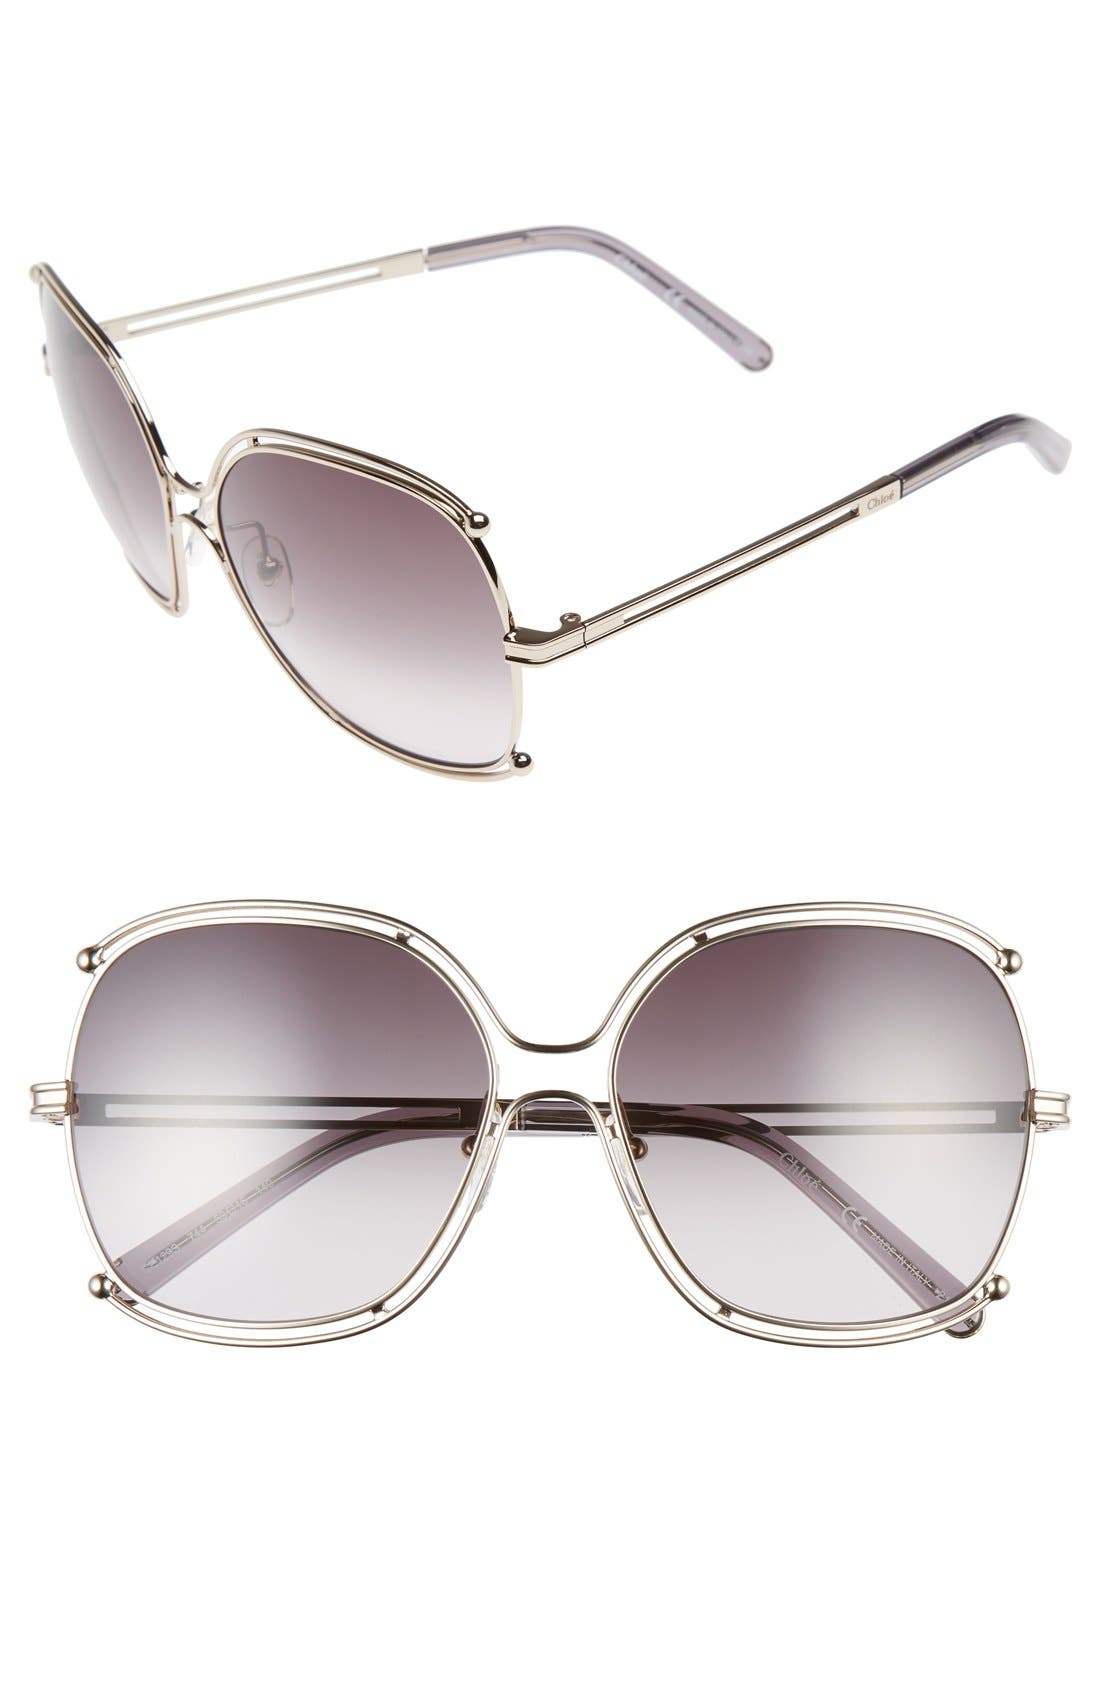 Isidora 59mm Square Sunglasses,                             Main thumbnail 1, color,